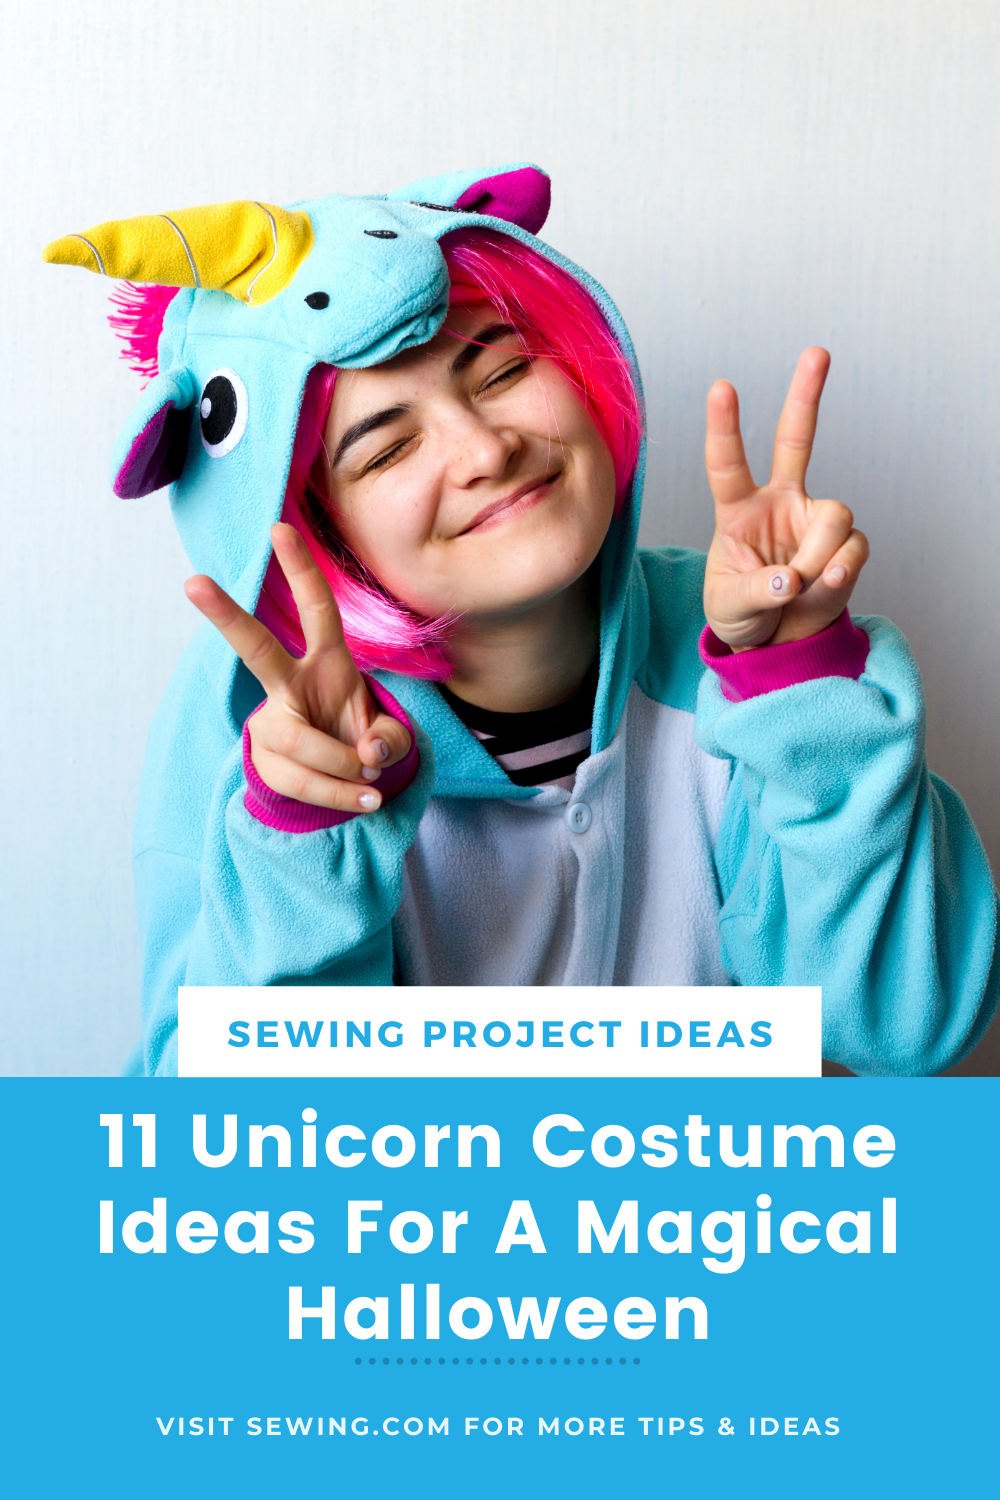 placard | 11 Unicorn Costume Ideas For A Magical Halloween